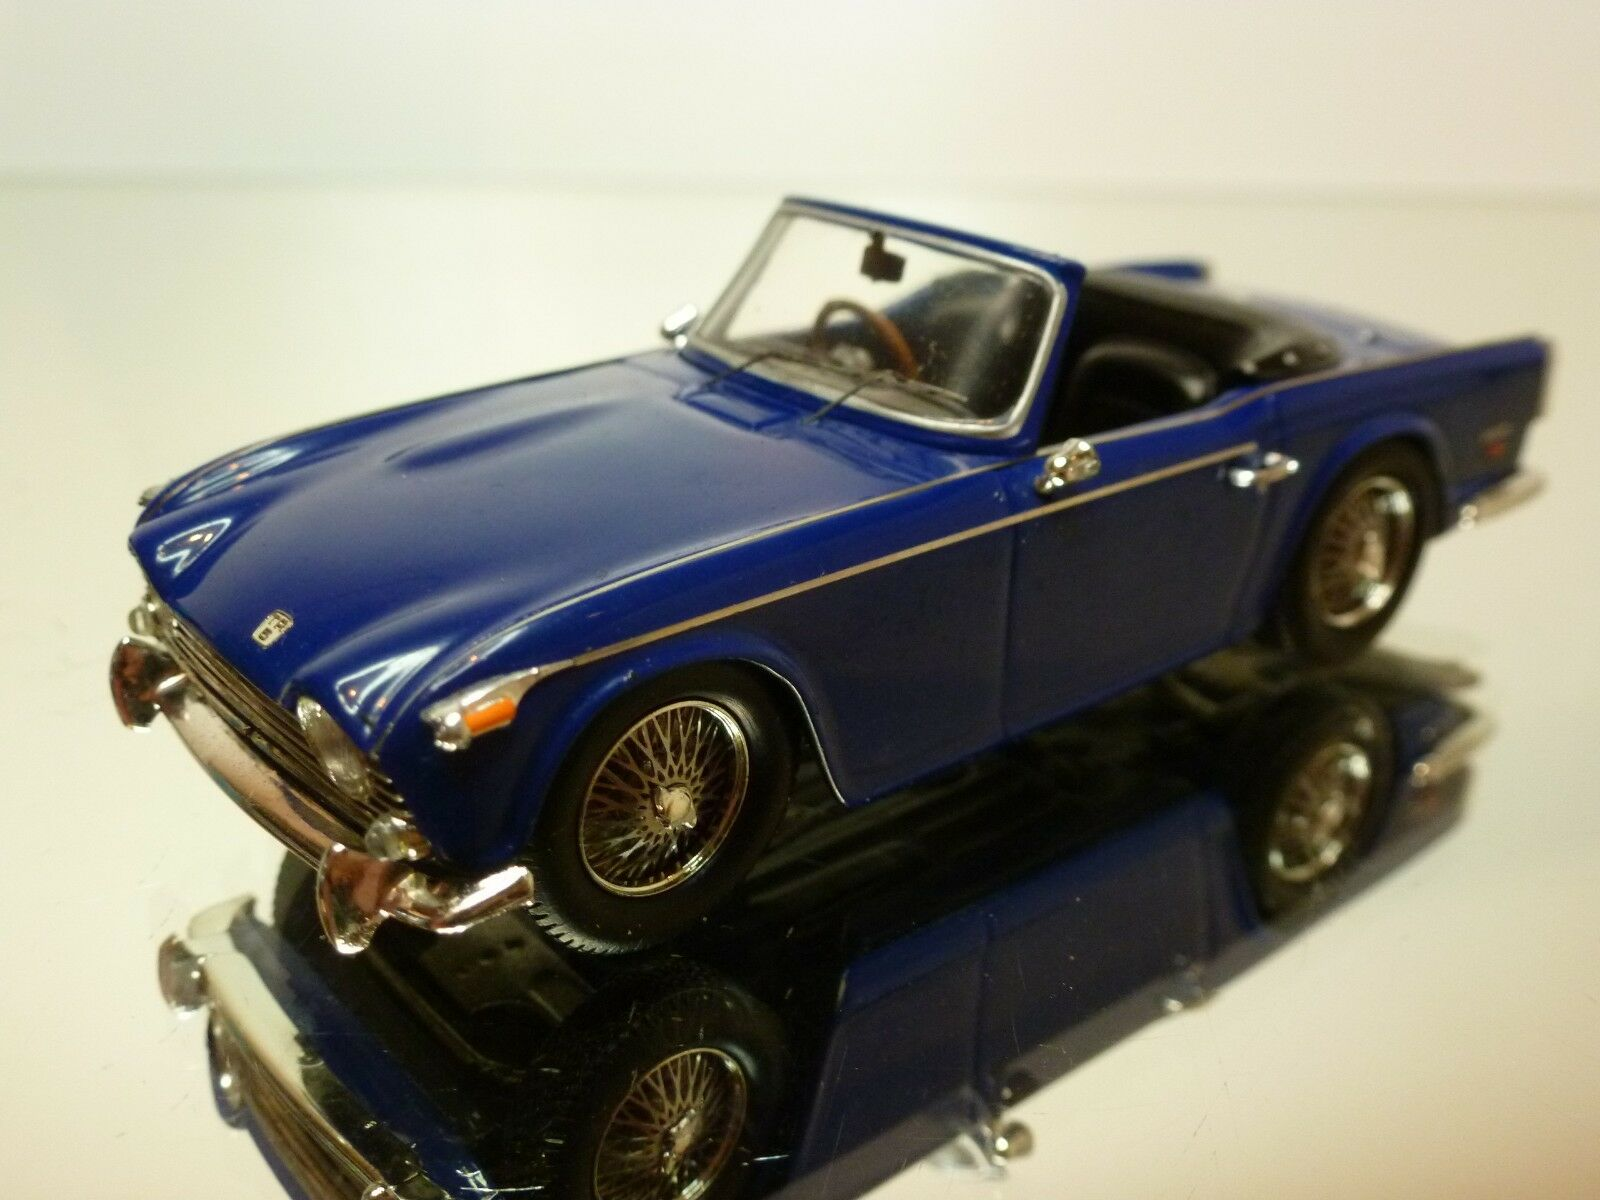 SPARK 515 TRIUMPH TR5 1968 - blueE 1 43 - EXCELLENT CONDITION - 25